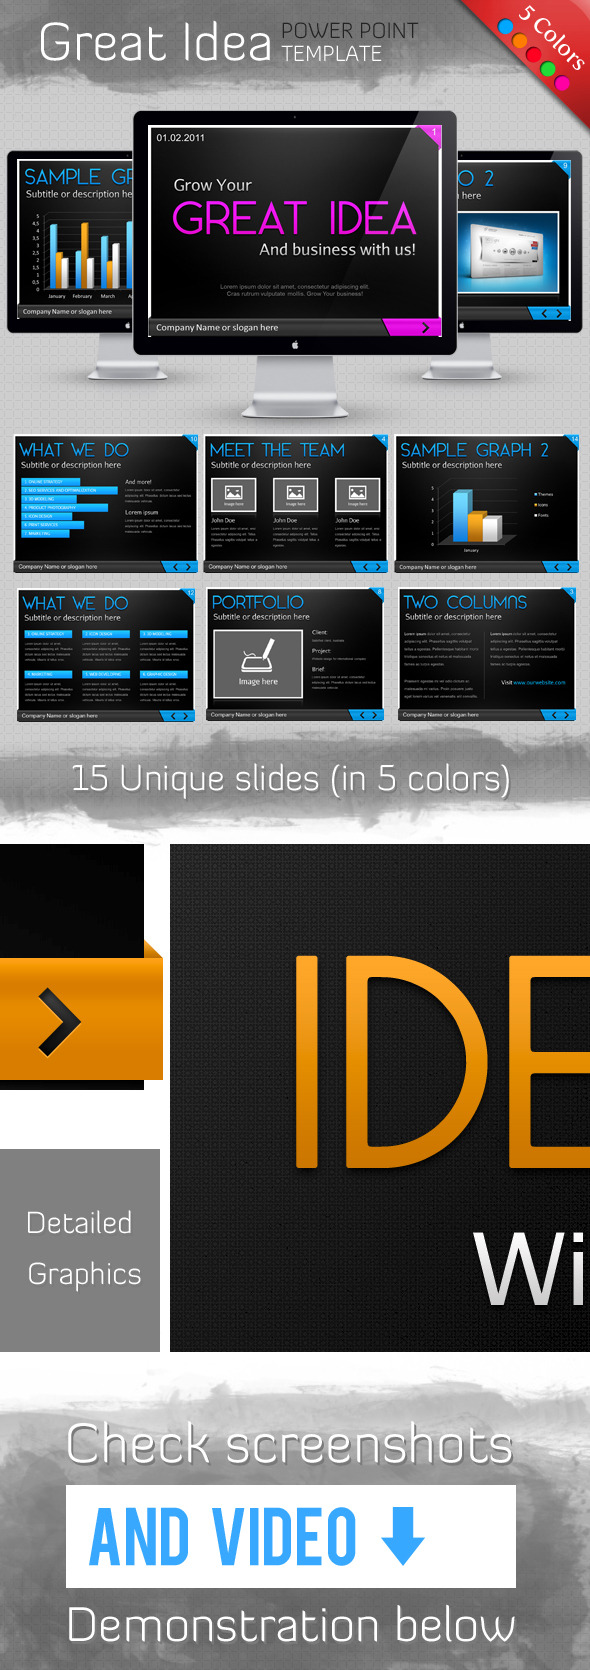 Idea Template - PowerPoint Templates Presentation Templates